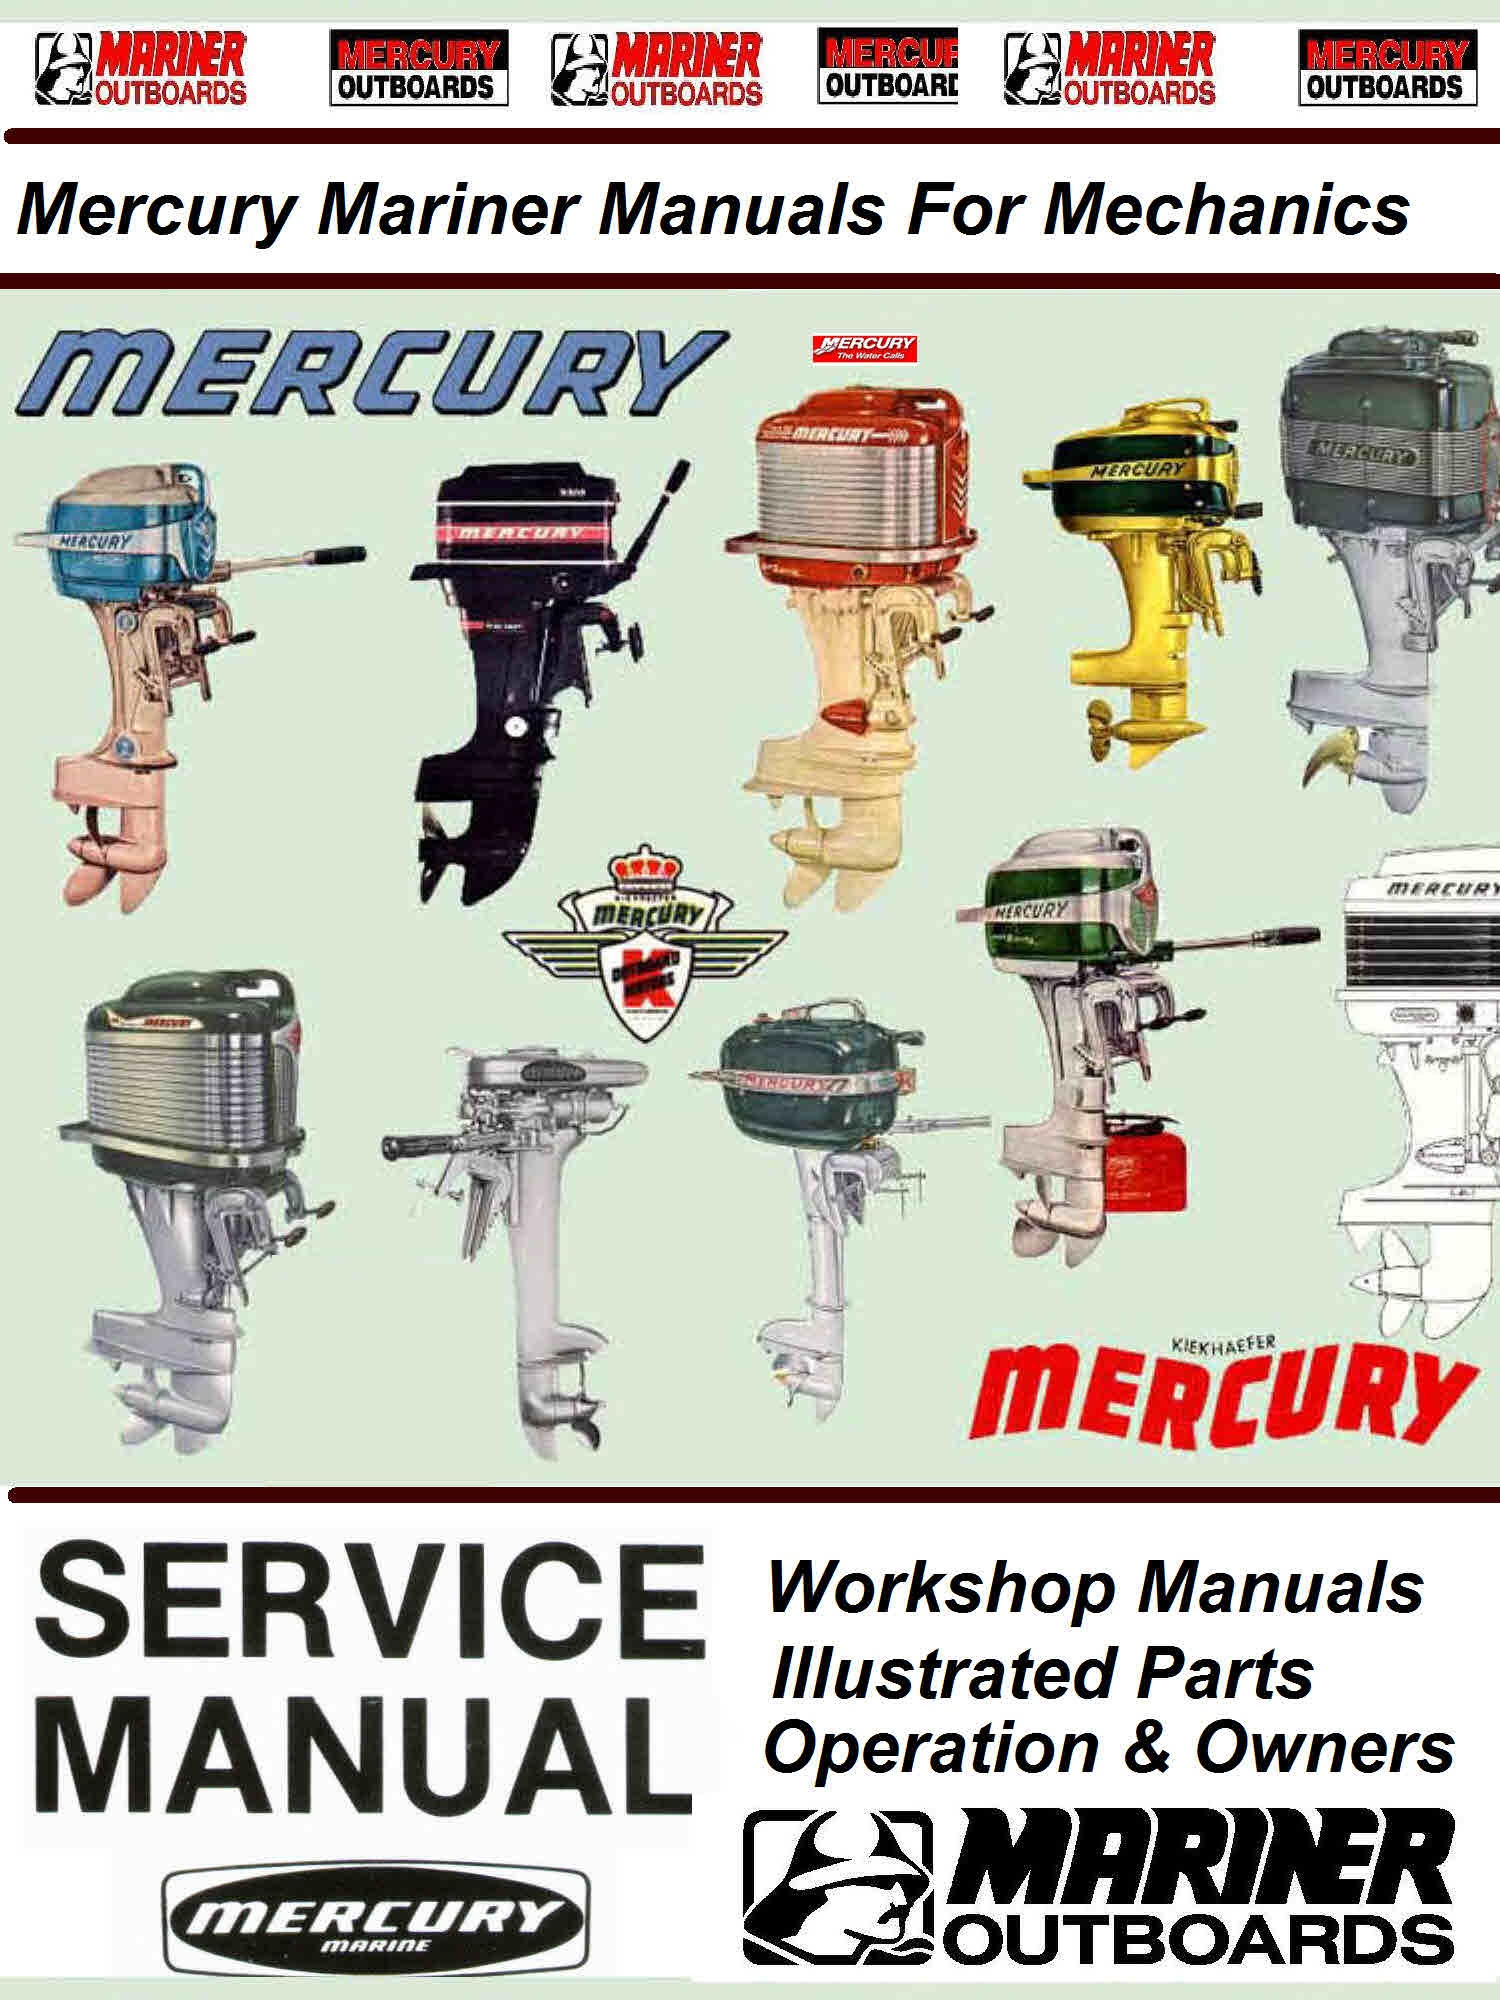 hight resolution of mercury mariner vintage service manuals for mechanicslarge collection of mercury mariner workshop service manualsillustrated parts manuals operator